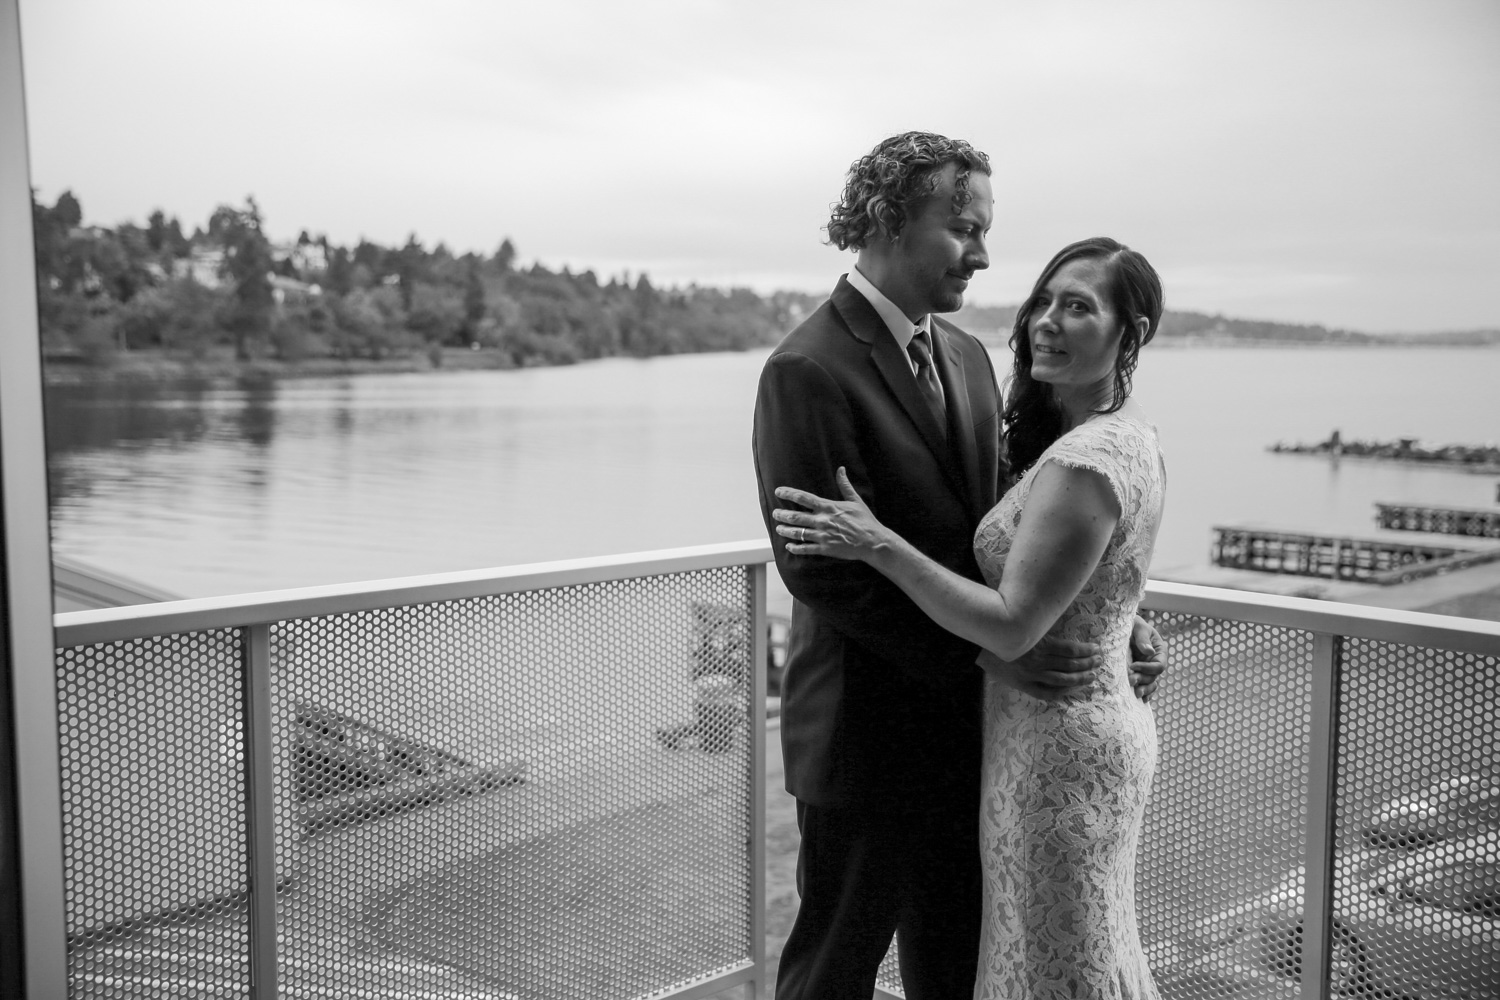 Wedding Mt Baker Rowing Club Seattle Washington 02.jpg